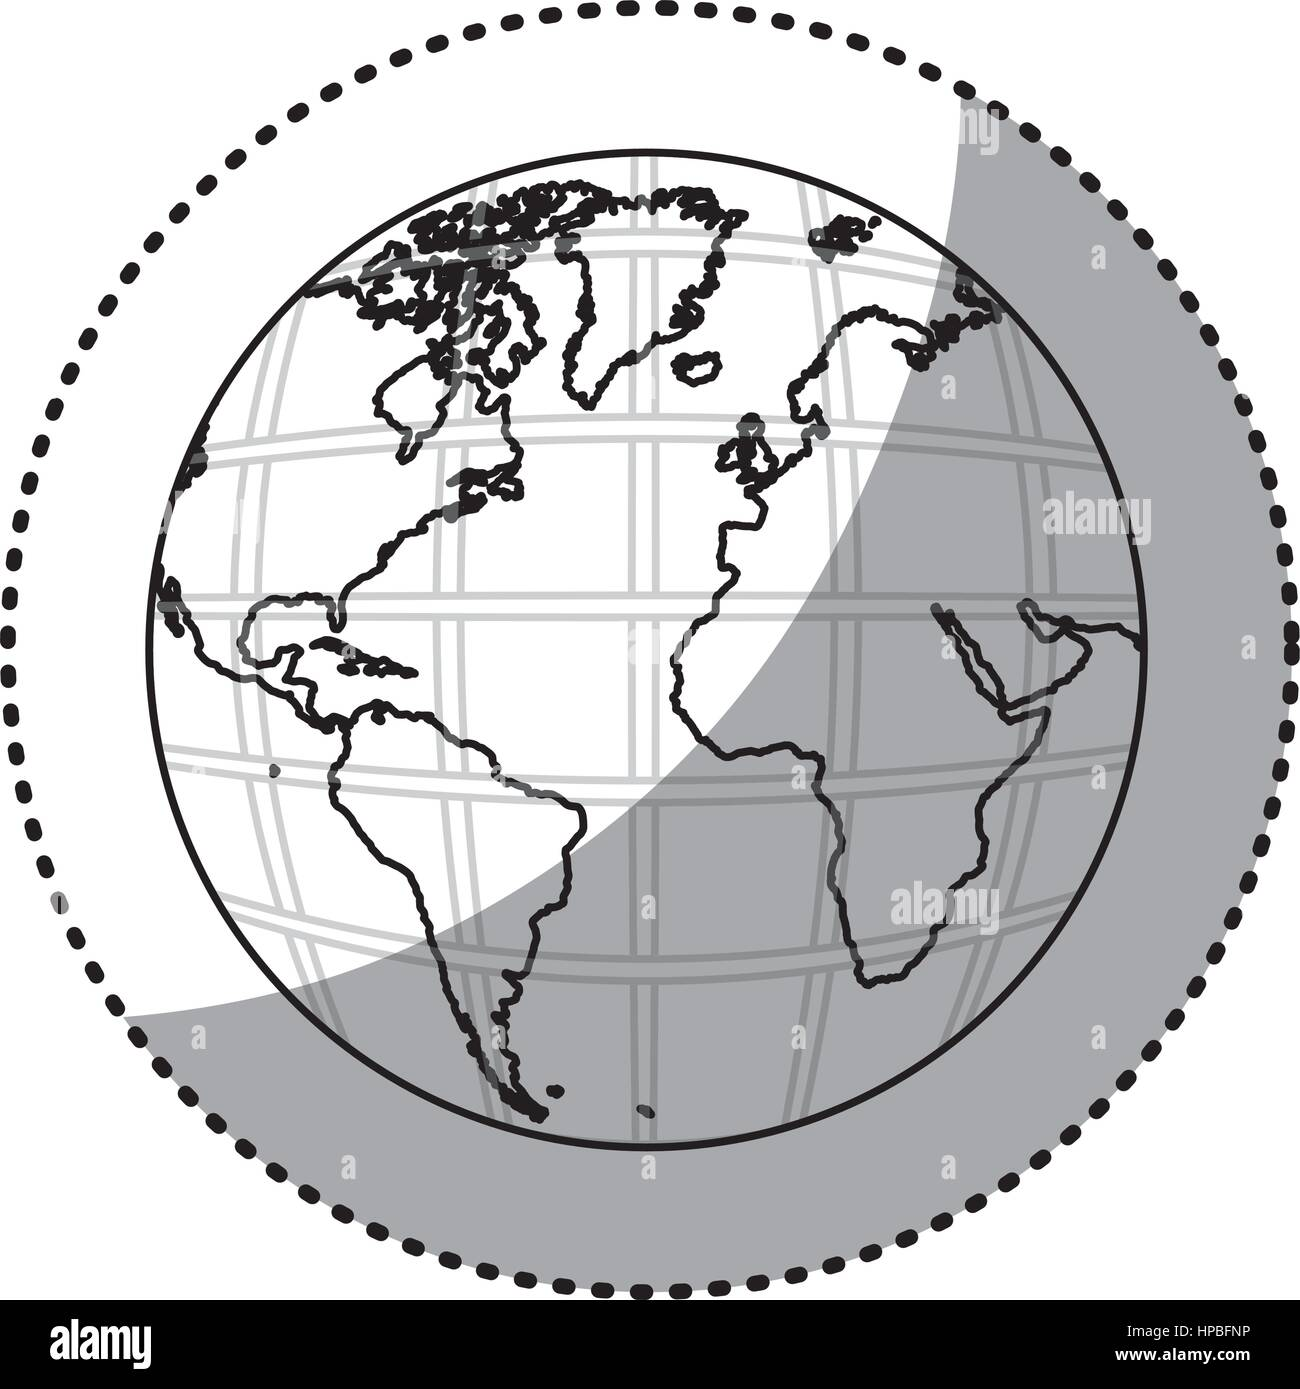 Sticker silhouette earth world map with continents in 3d stock sticker silhouette earth world map with continents in 3d gumiabroncs Choice Image